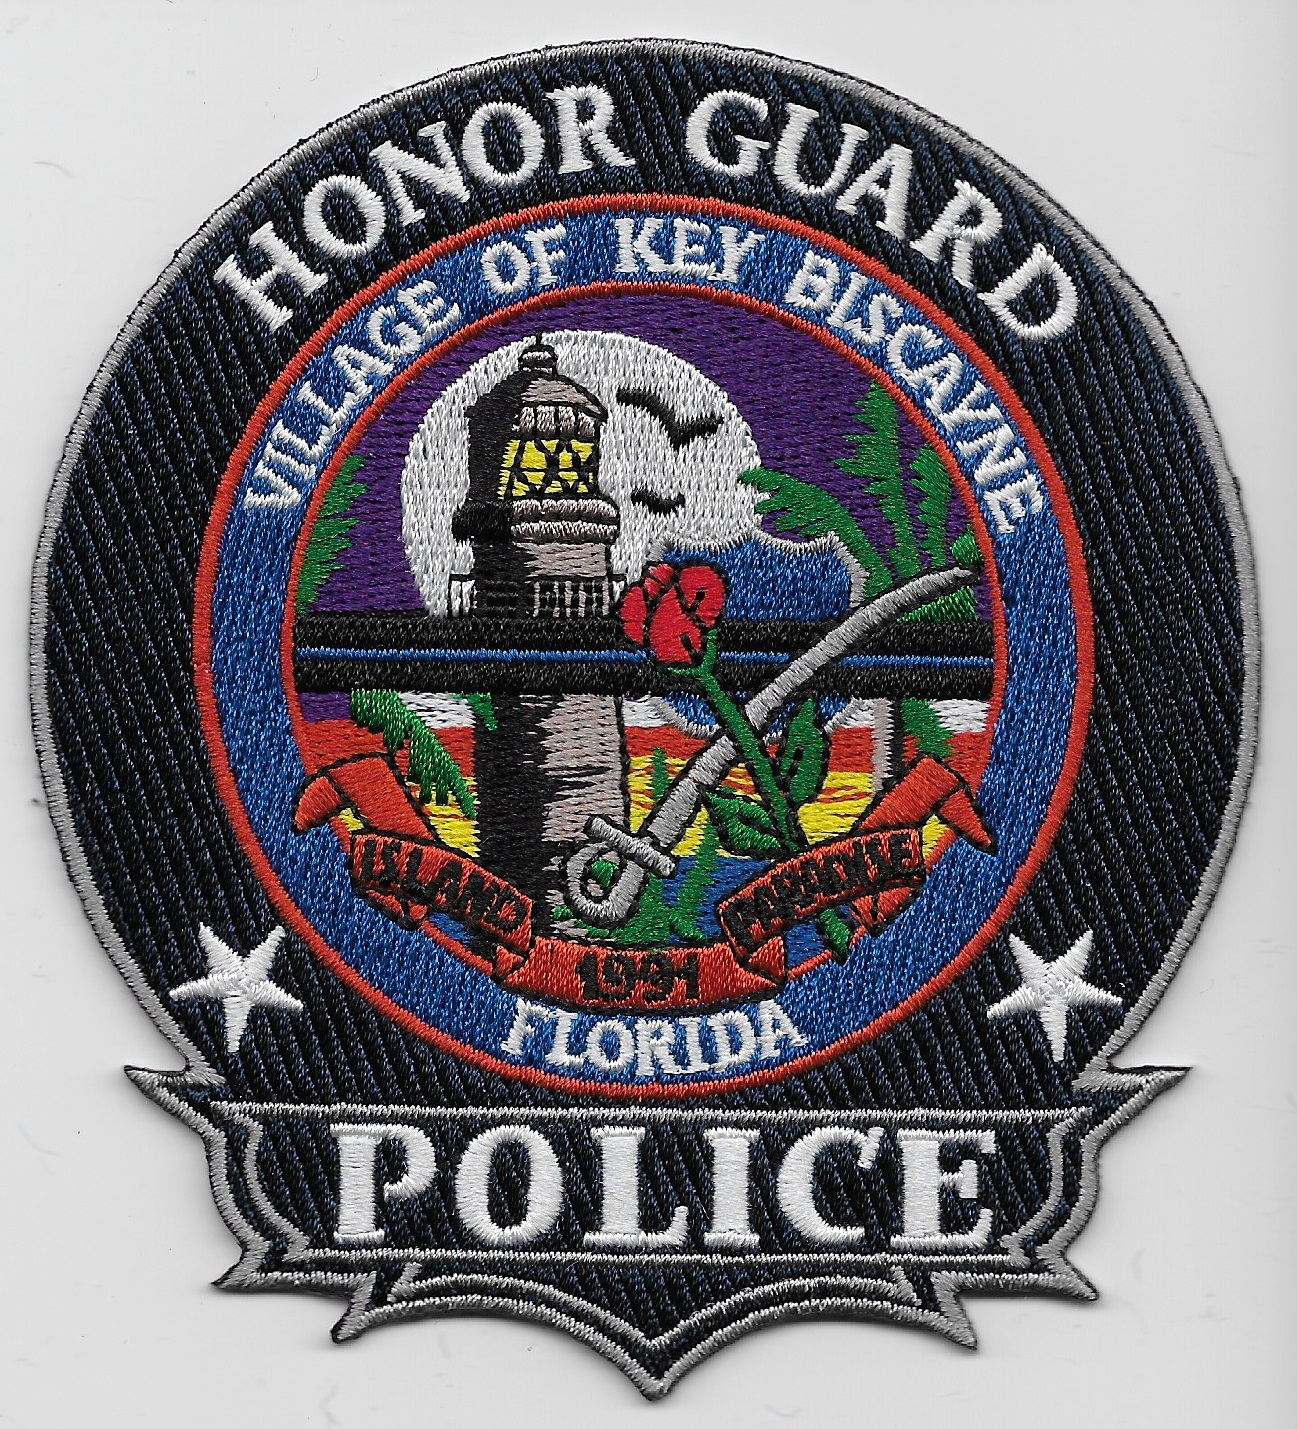 Key Biscayne Police Honor Guard